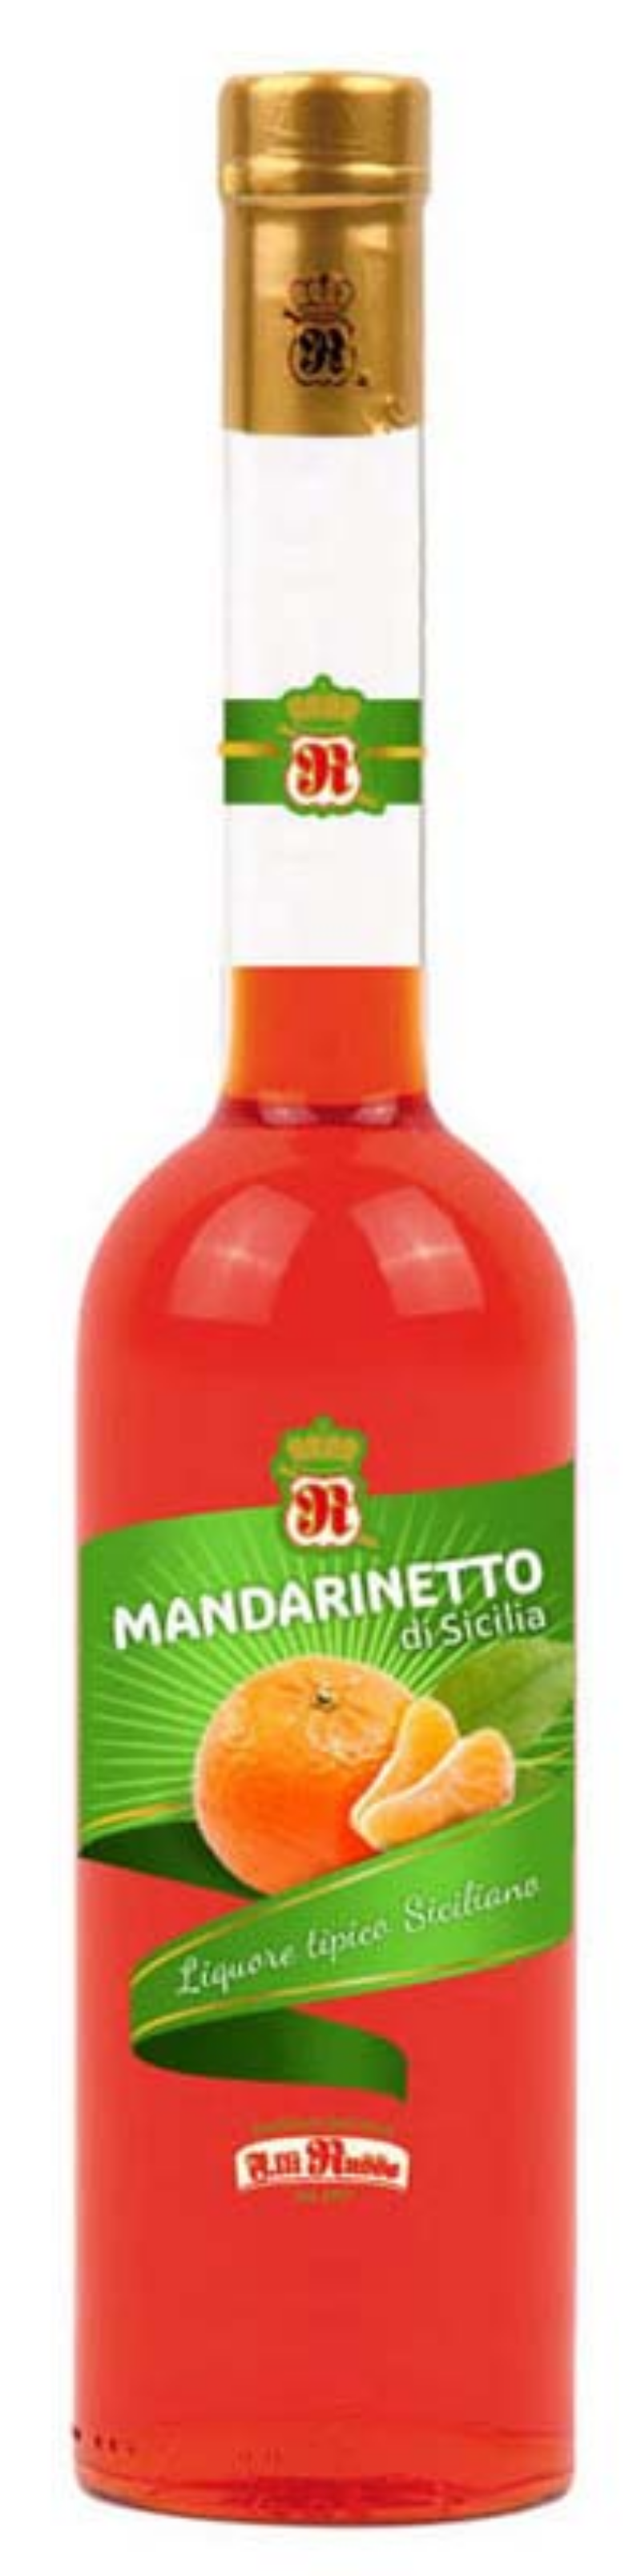 Mandarinetto